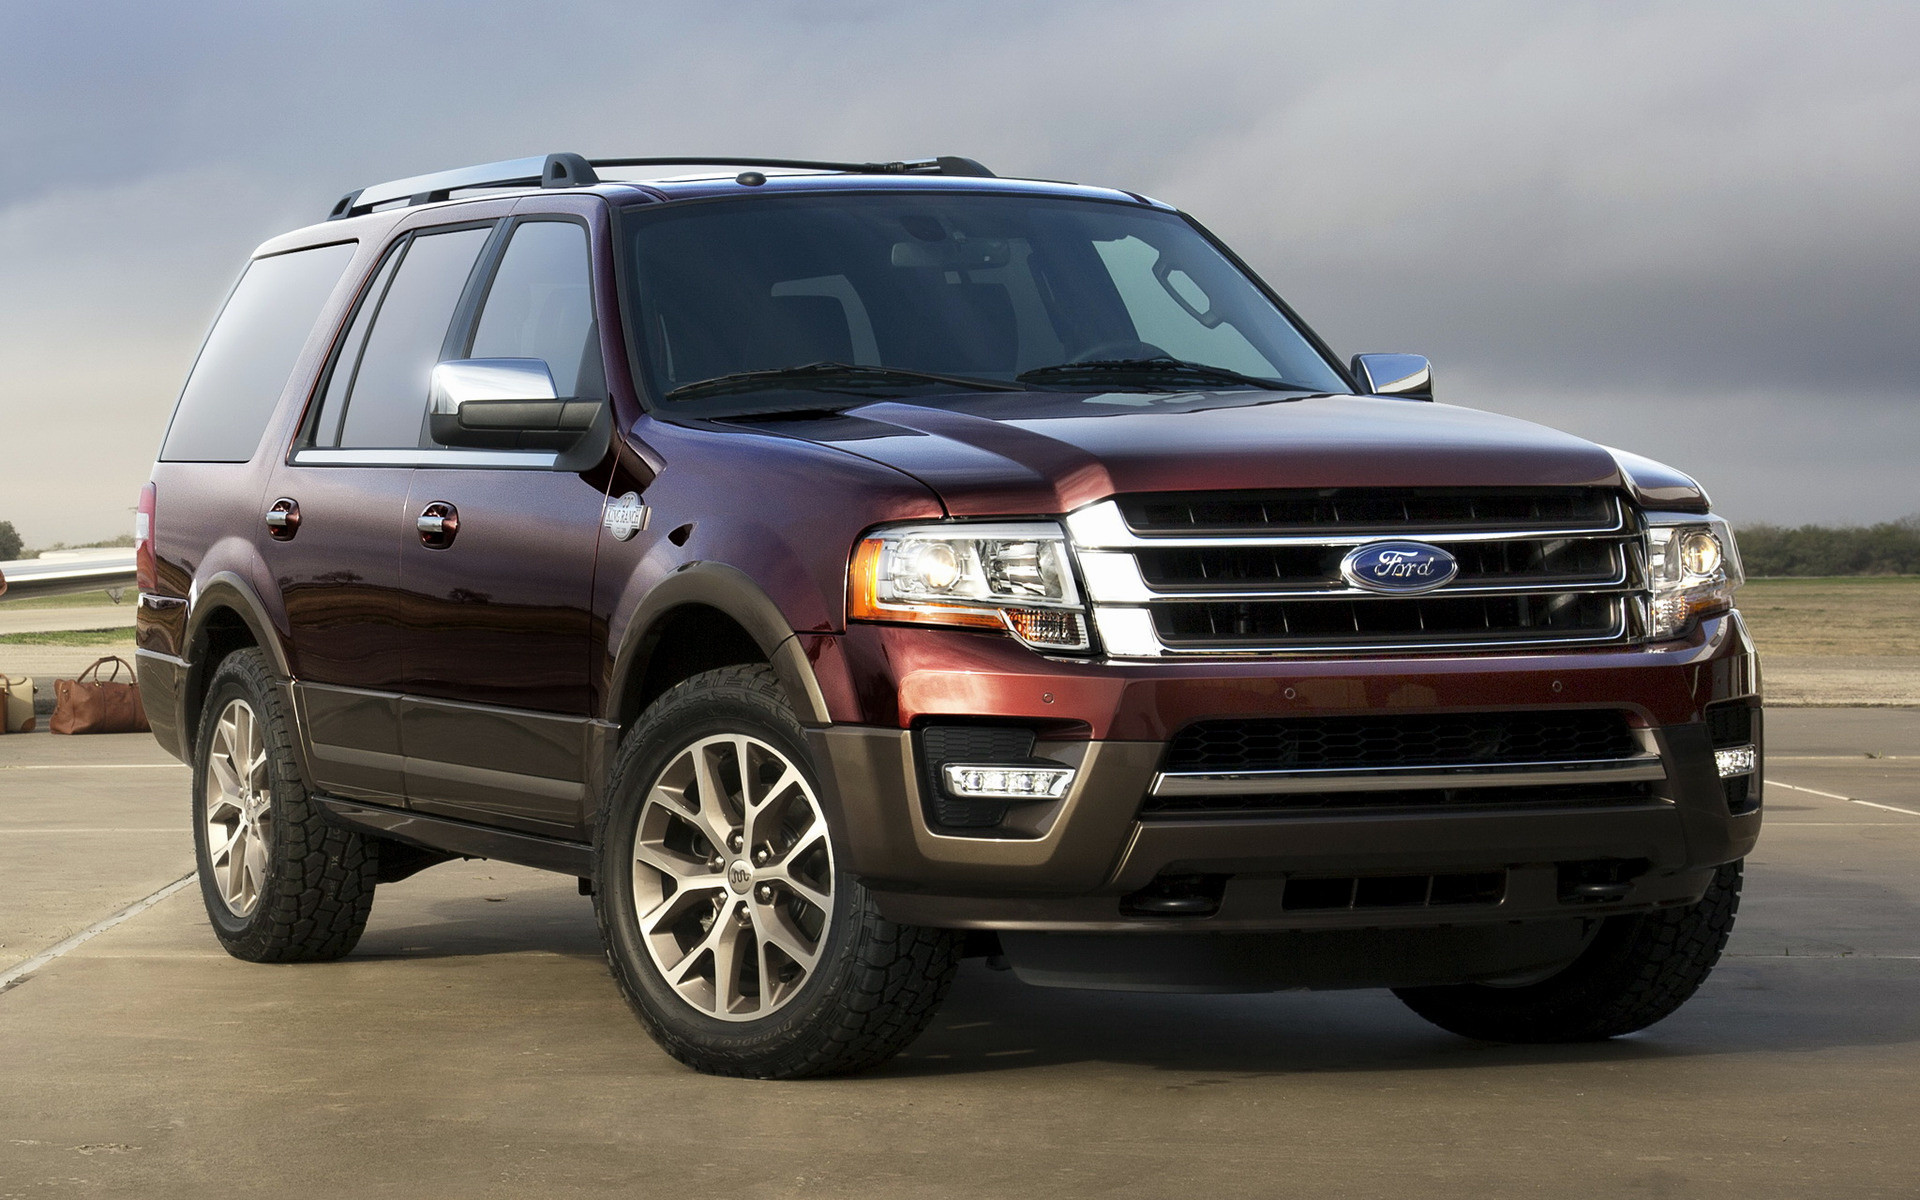 Ford Expedition King Ranch (2015) Wallpapers and HD Images